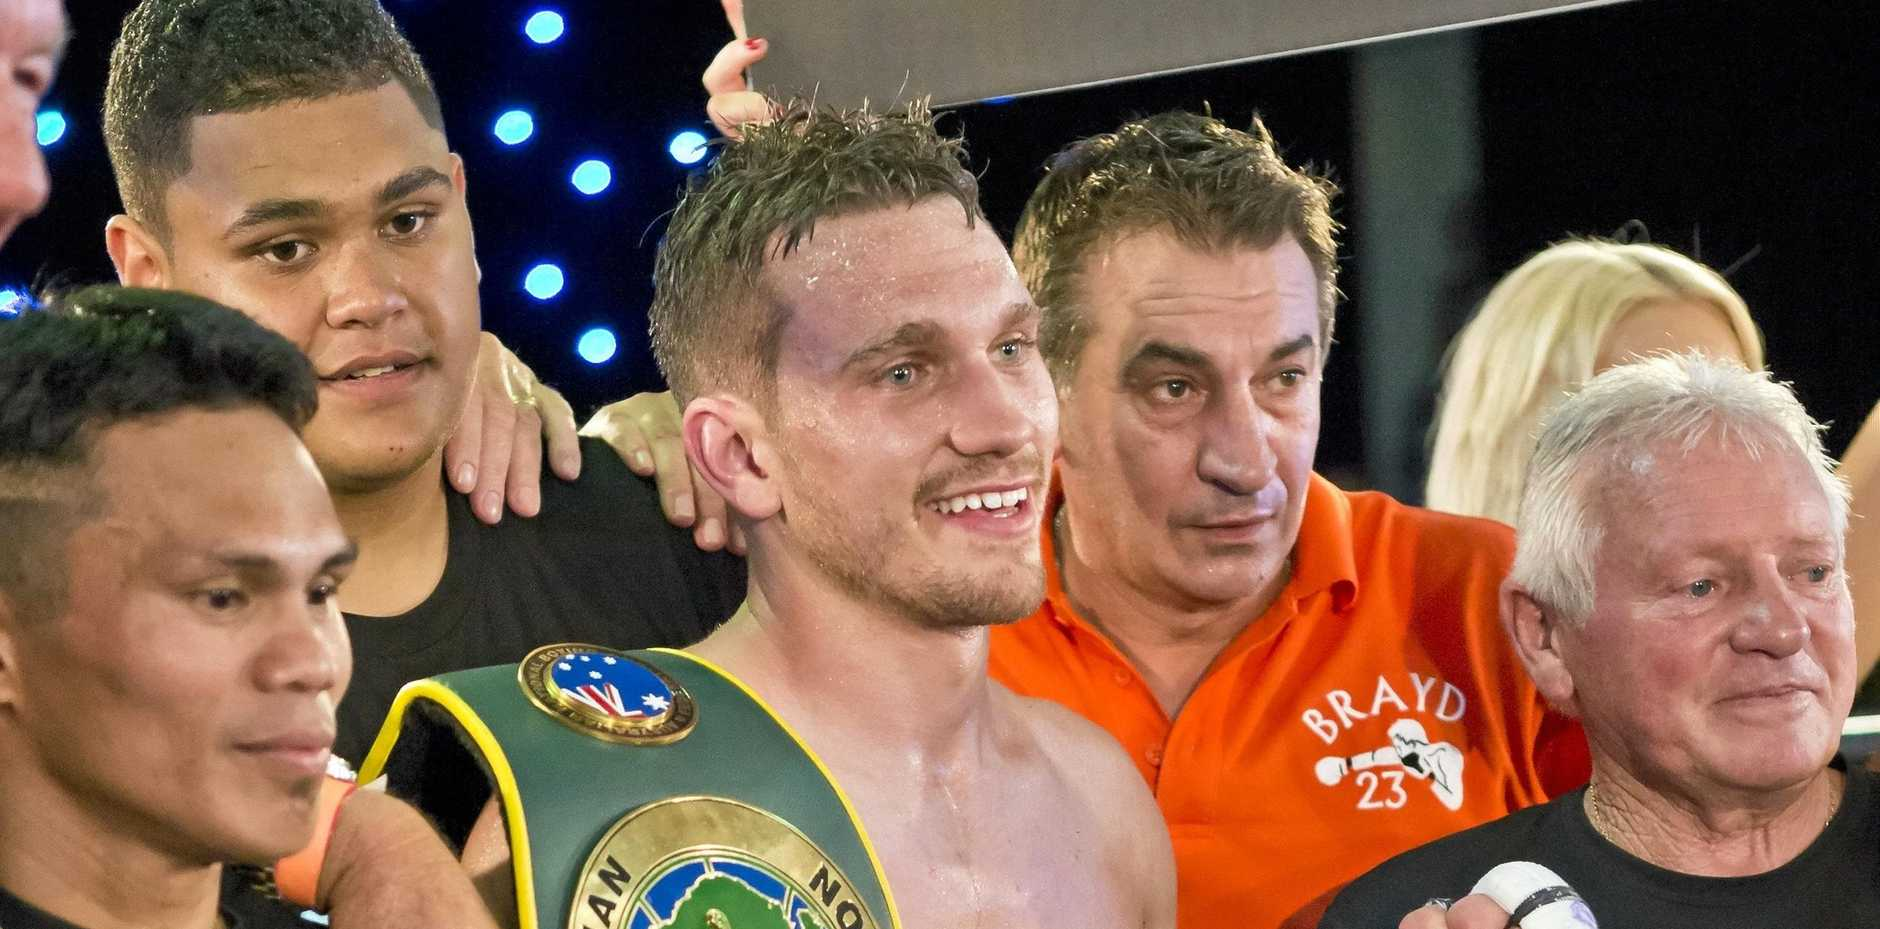 TEAM EFFORT: Steve Spark celebrates with his supporters (from left) Jack Asis, Corban Kanaveilomani, trainer Brendon Smith and Bert Hornery after his win this month over Japan's Taisho Ozawa for the WUC Brayd Smith super lightweight title at Rumours International.